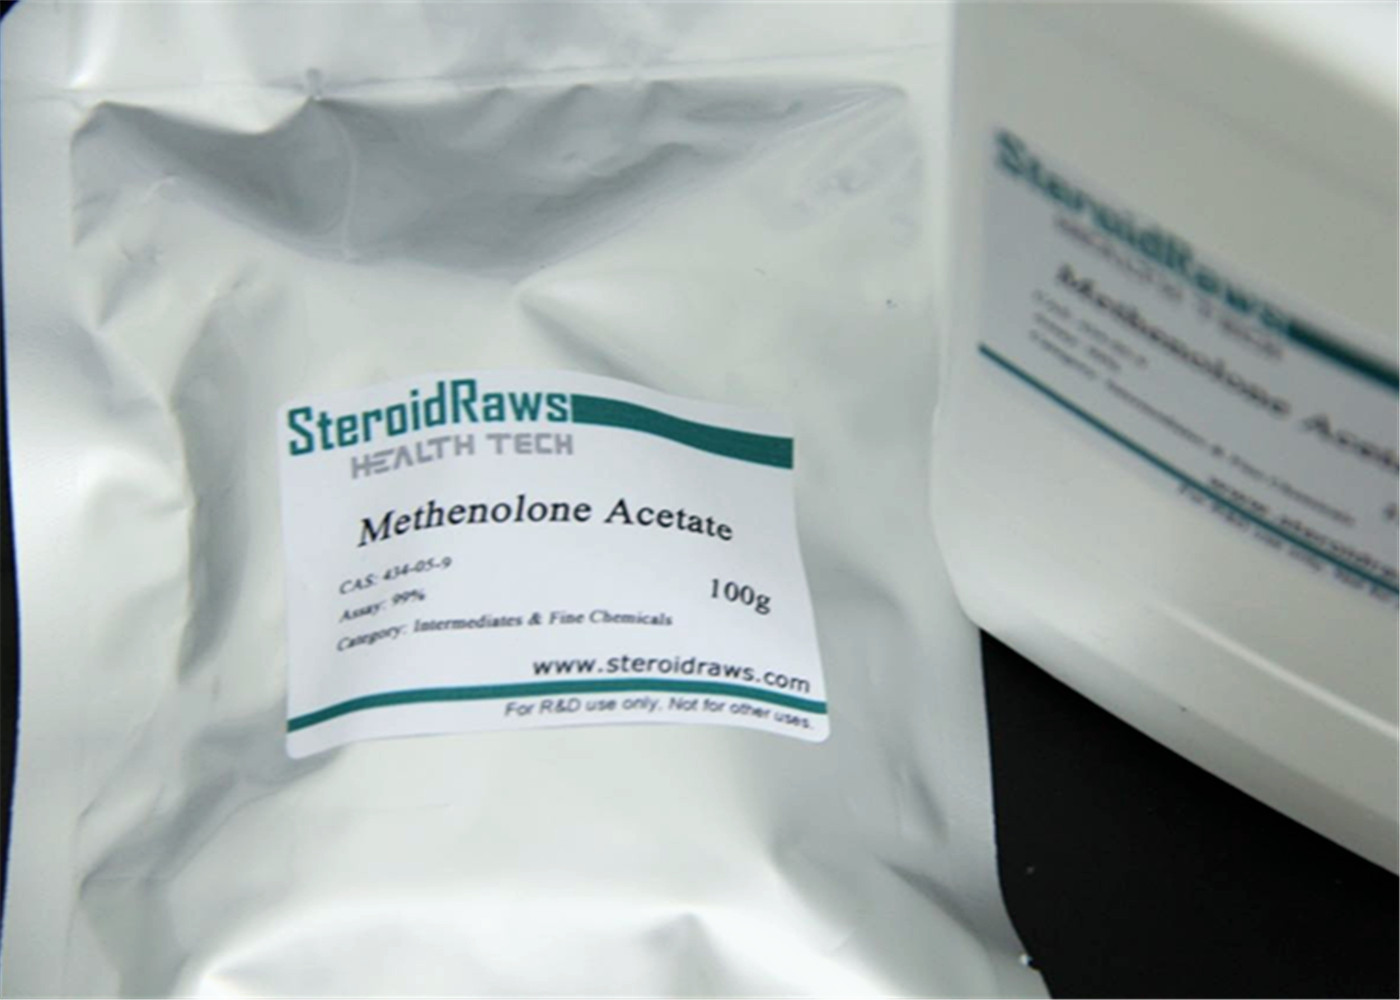 Well Tolerated Anabolic Primobolan Steroid Powders Methenolone Acetate 434-05-9 99% High Purity